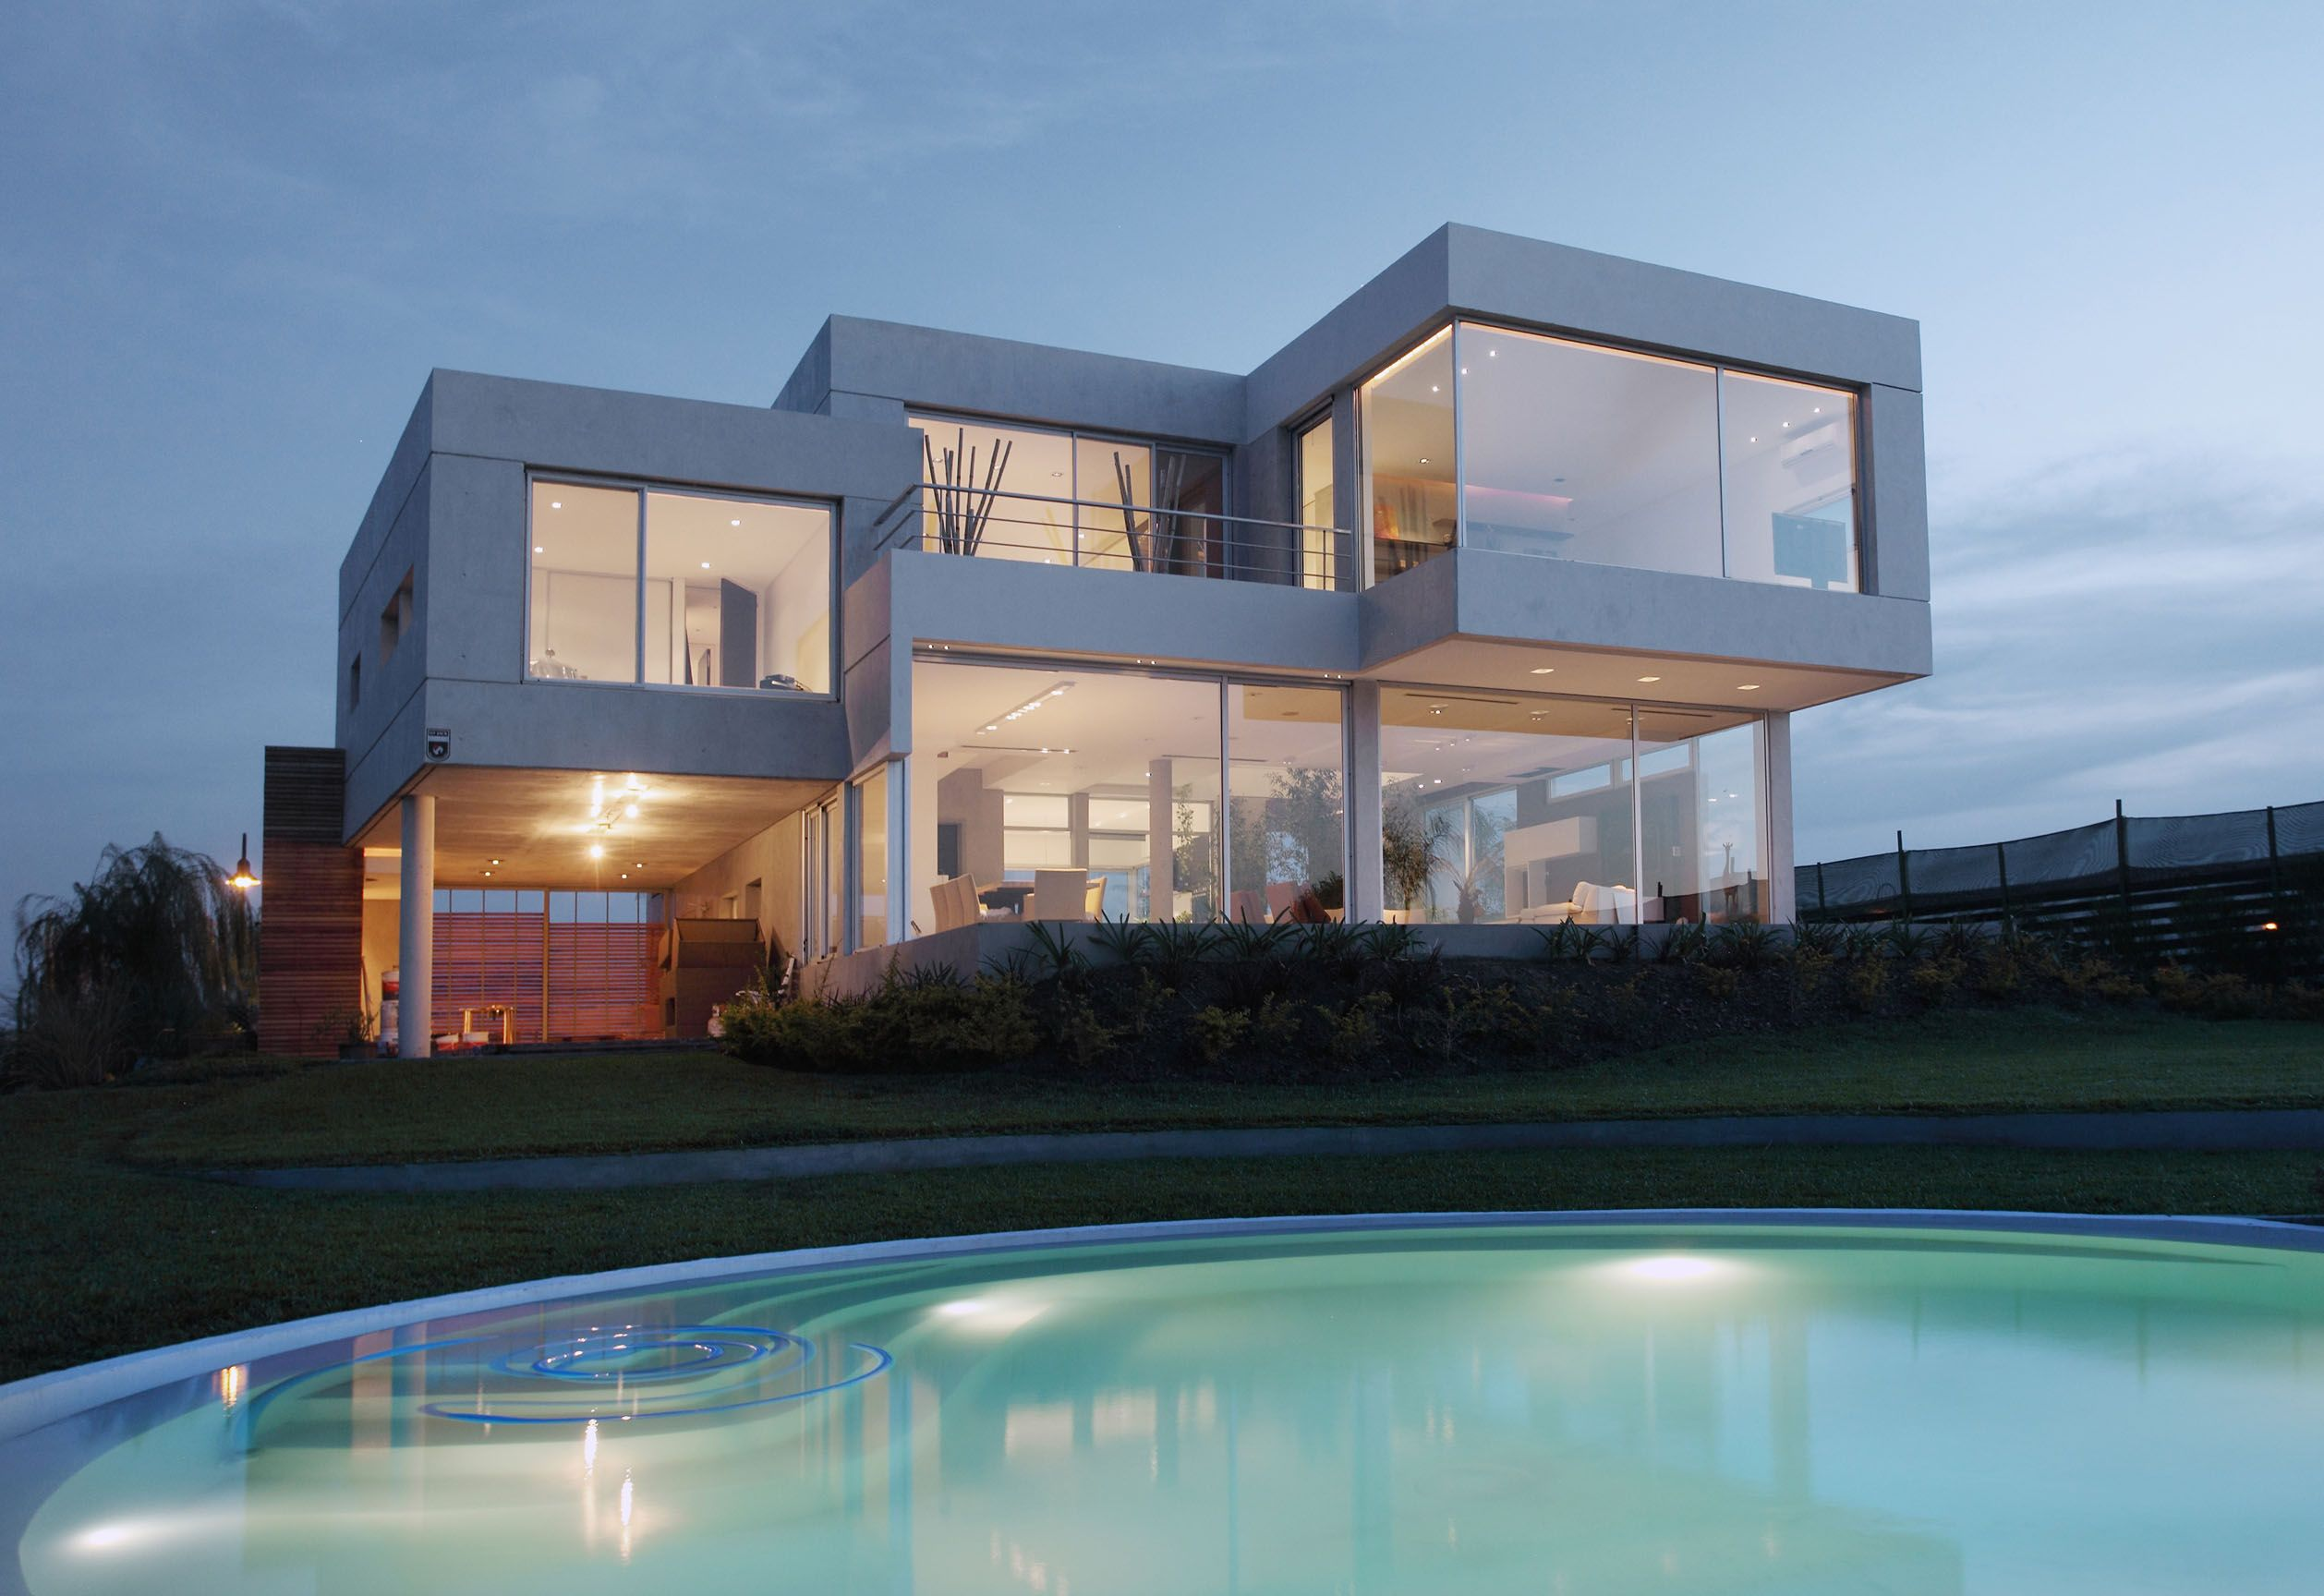 Pin By Abbas Al Yousef On Architecture Modern Exterior House Designs House Architecture Design Minimal House Design